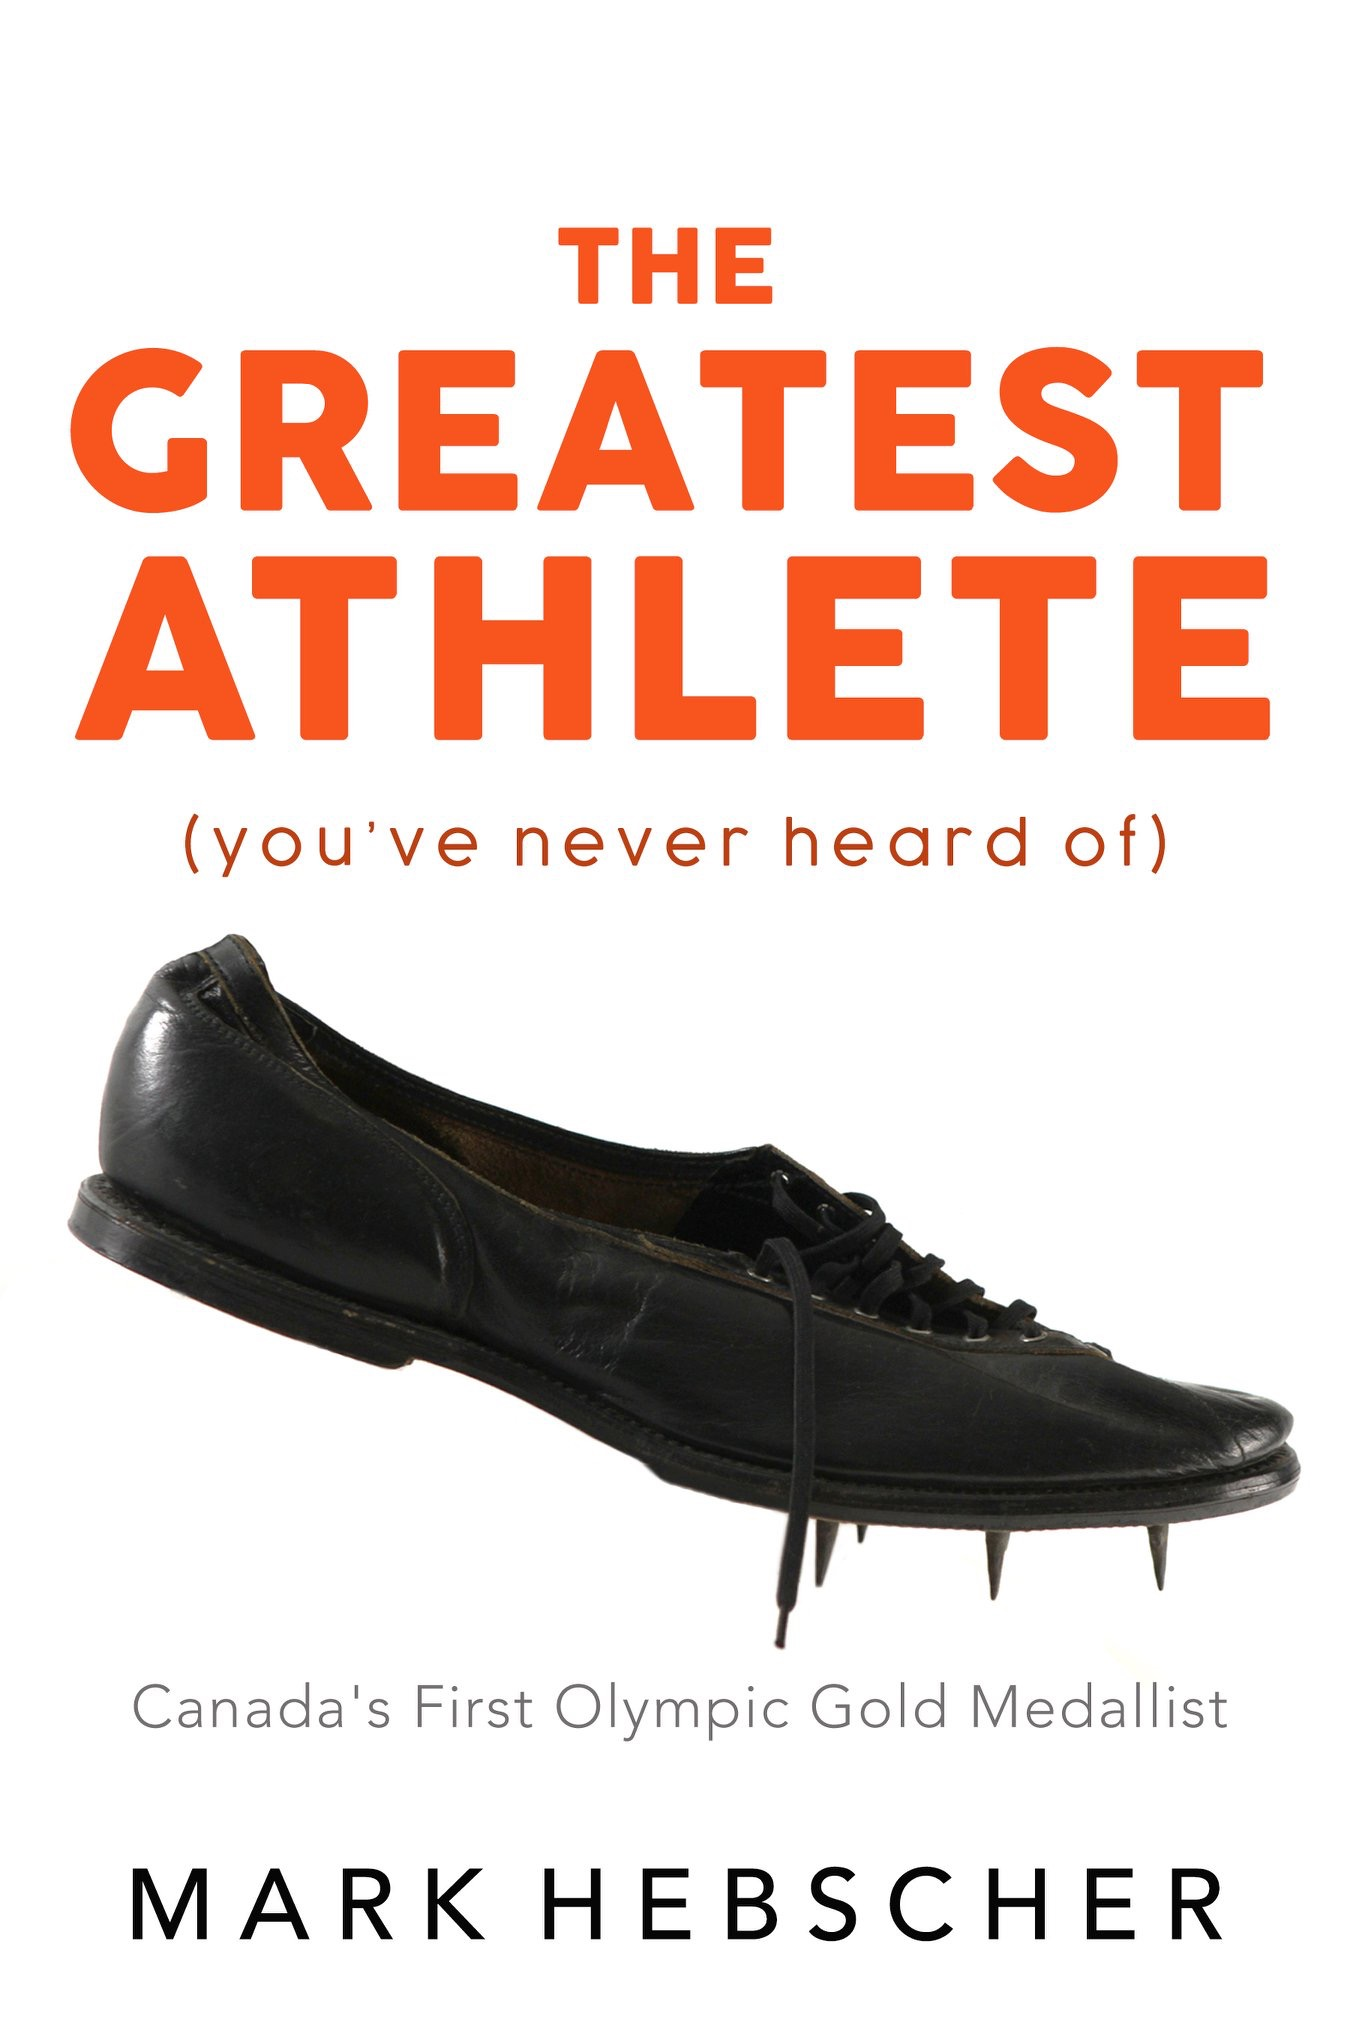 The Greatest Athlete